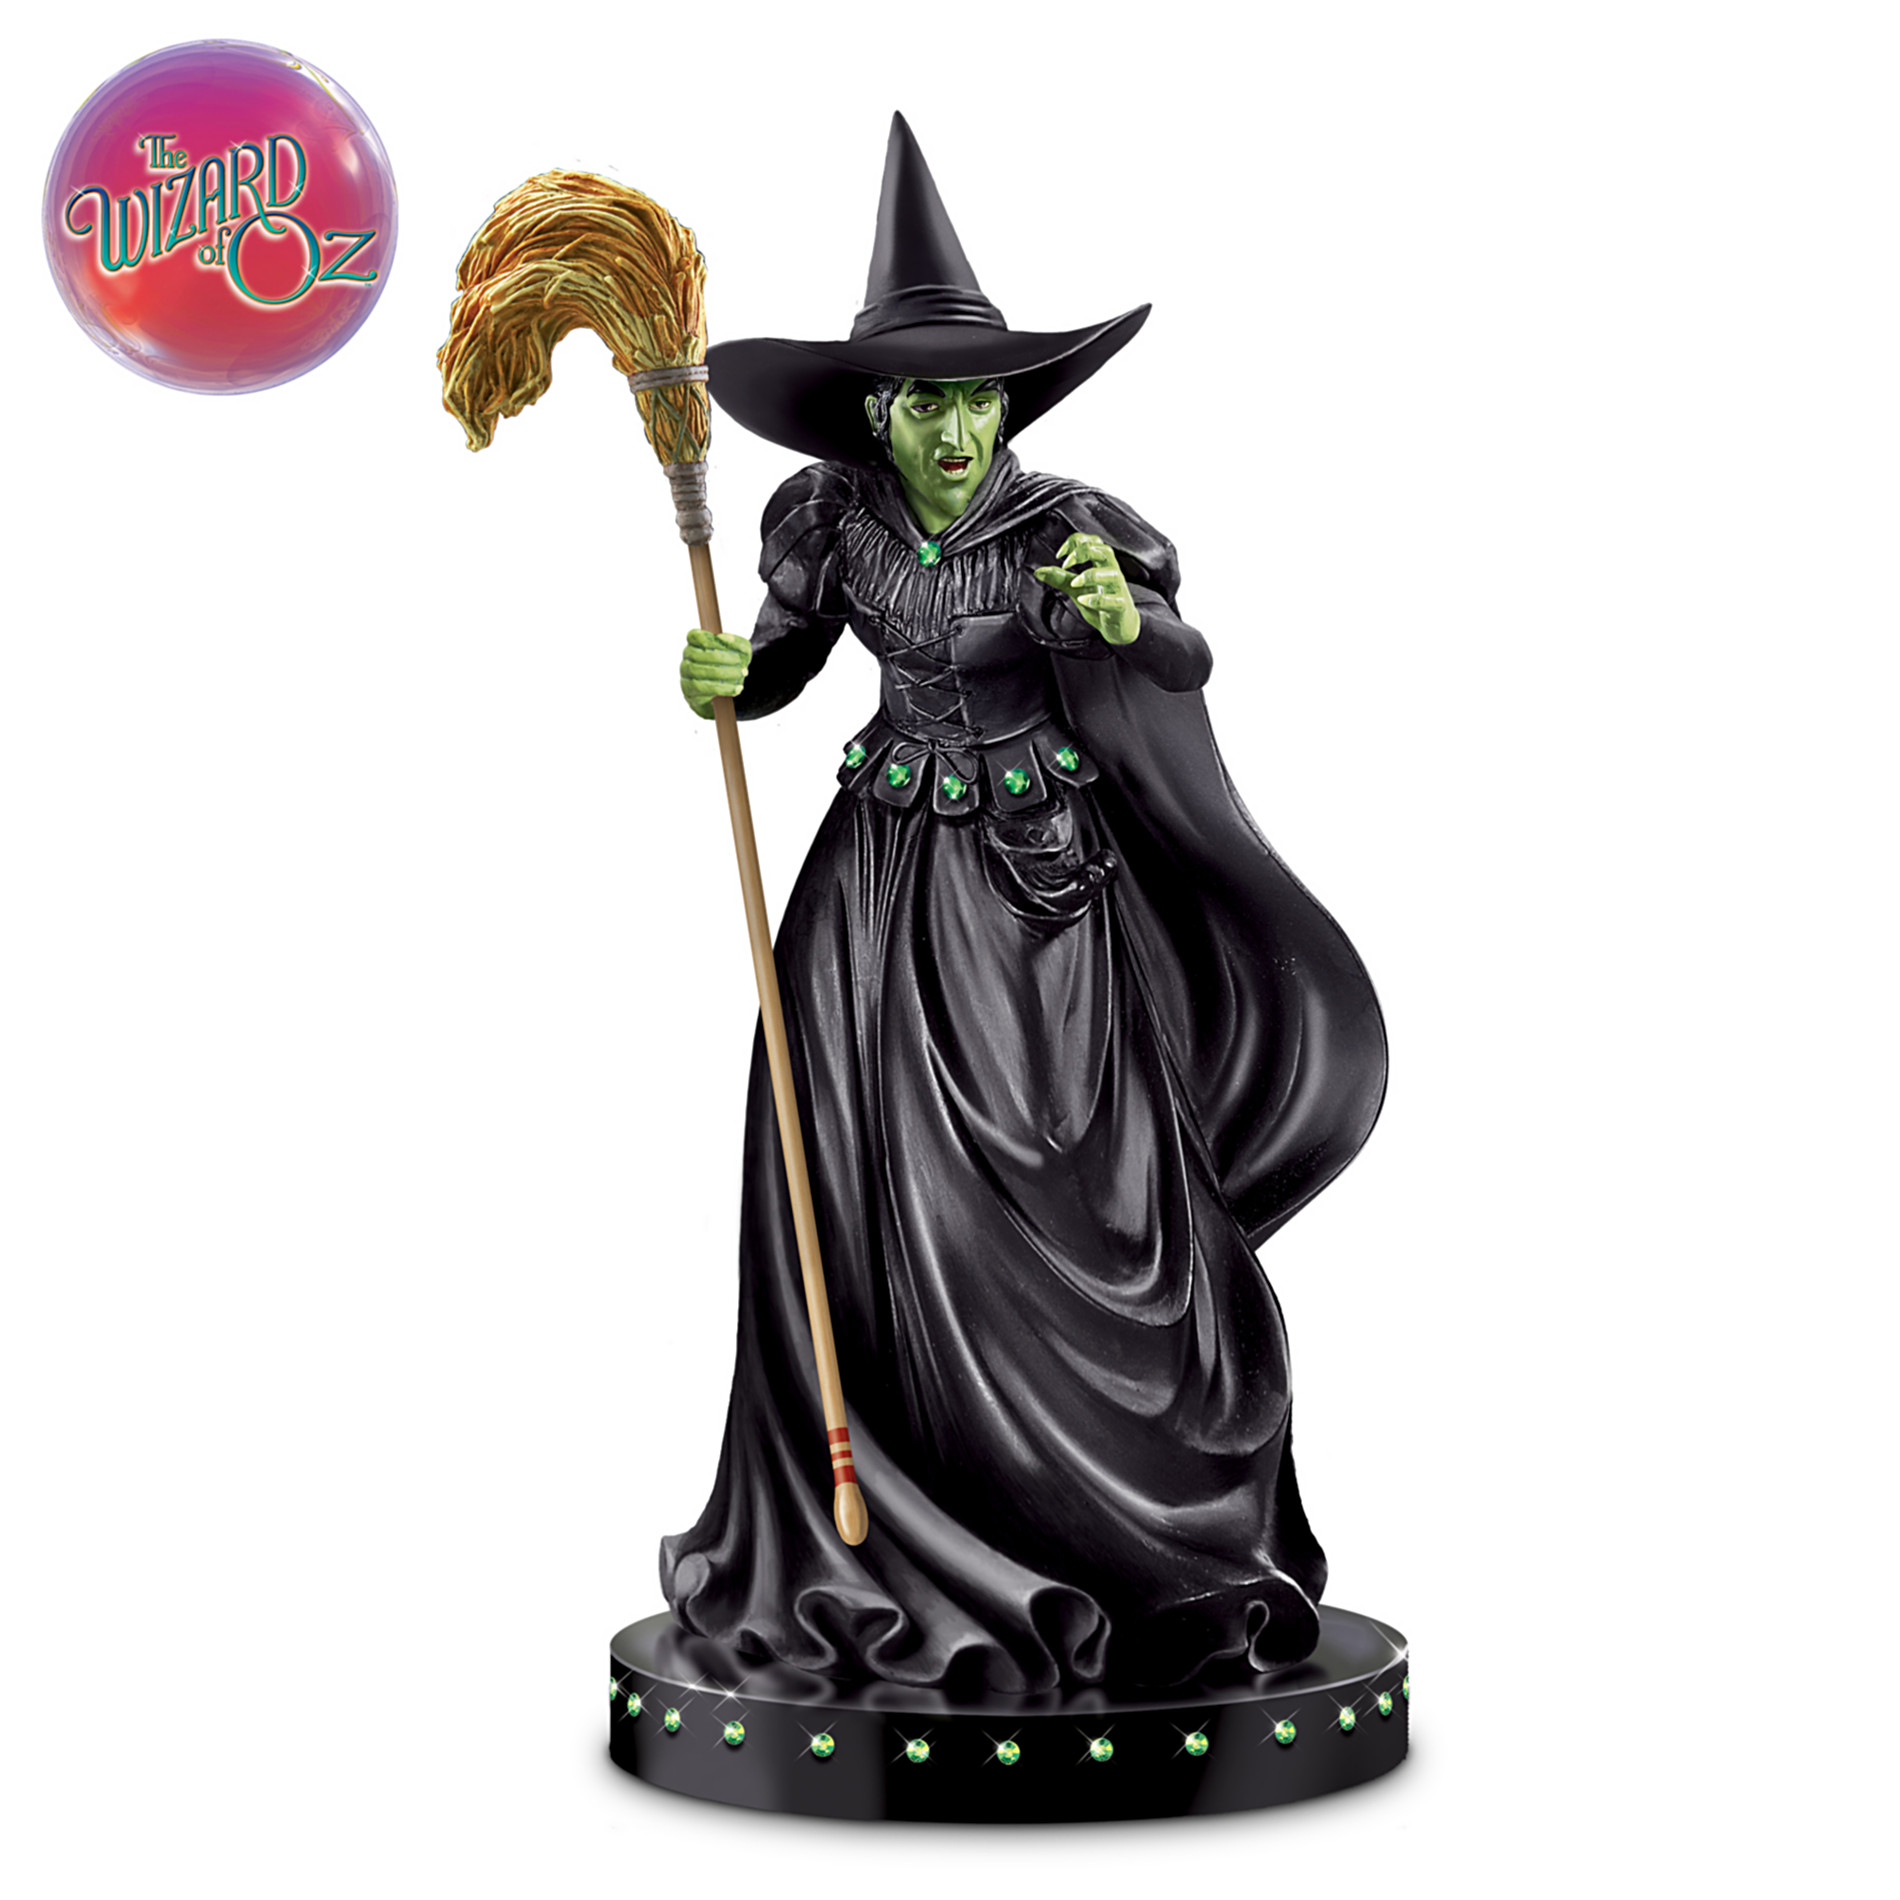 The Bradford Exchange The Wizard Of Oz ???Wicked Witch Of The West??? Glow-In-The-Dark Sculpture at Sears.com